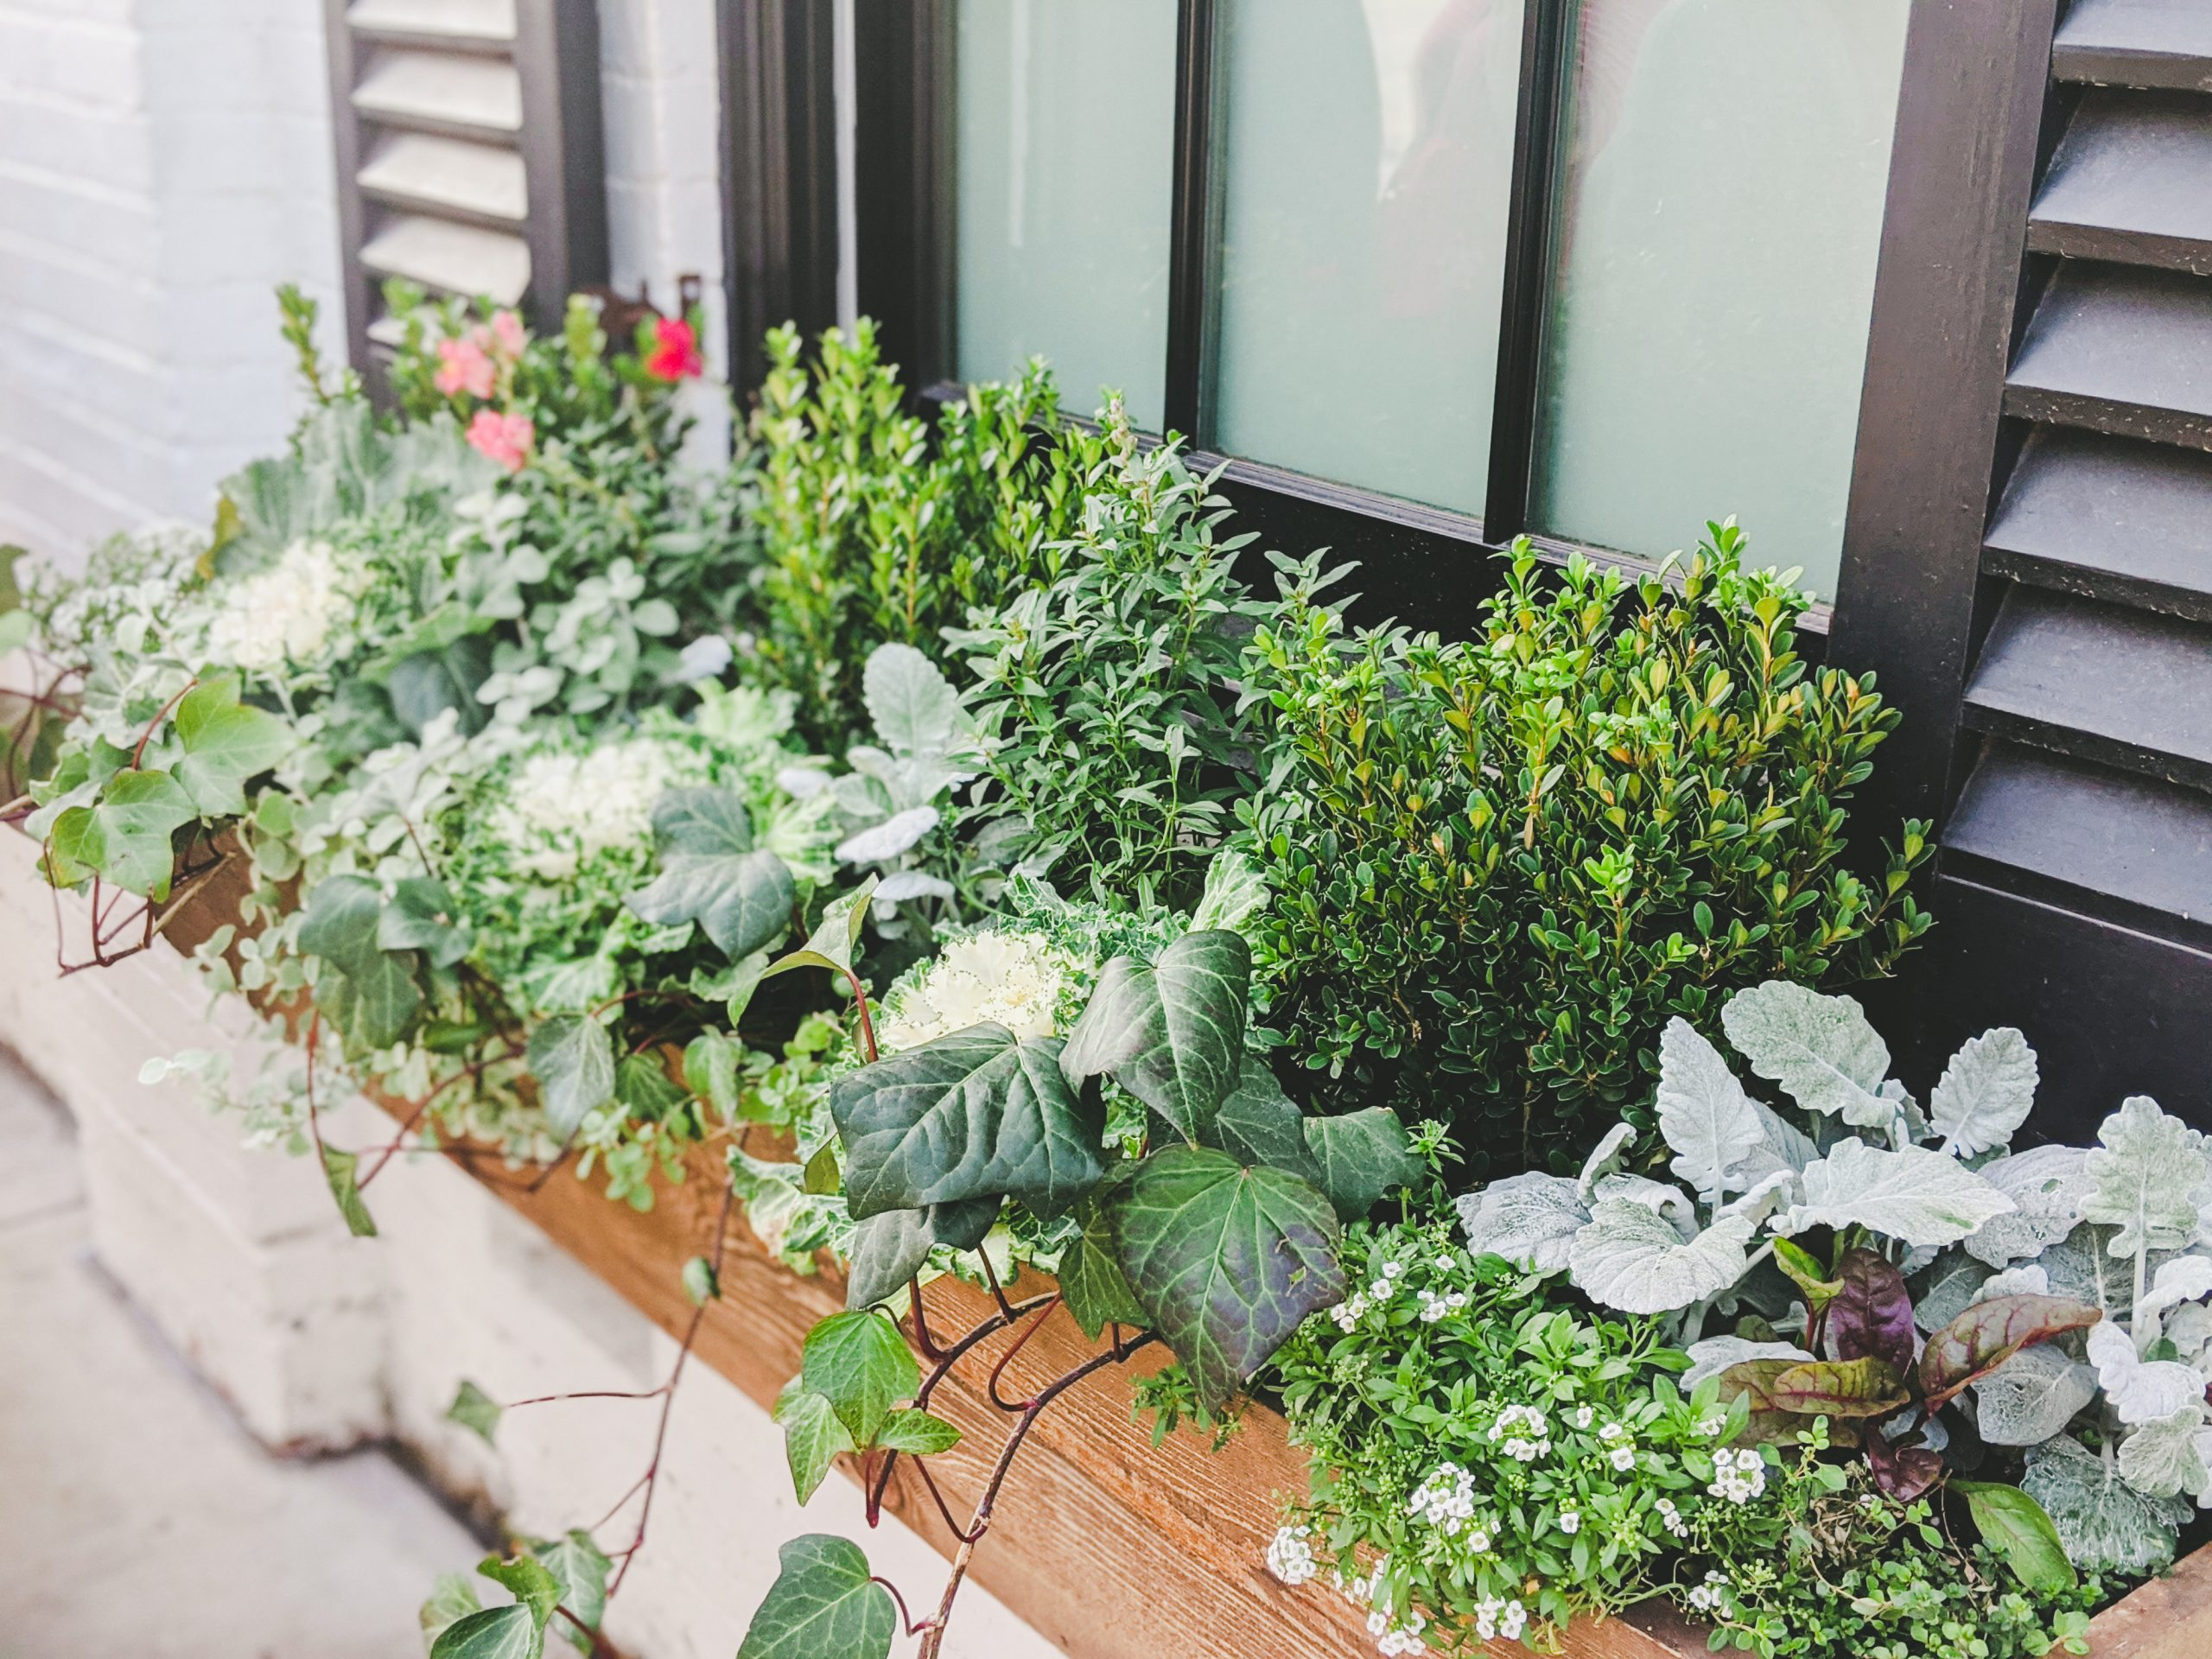 silos baking co. window garden box with boxwood and cabbage